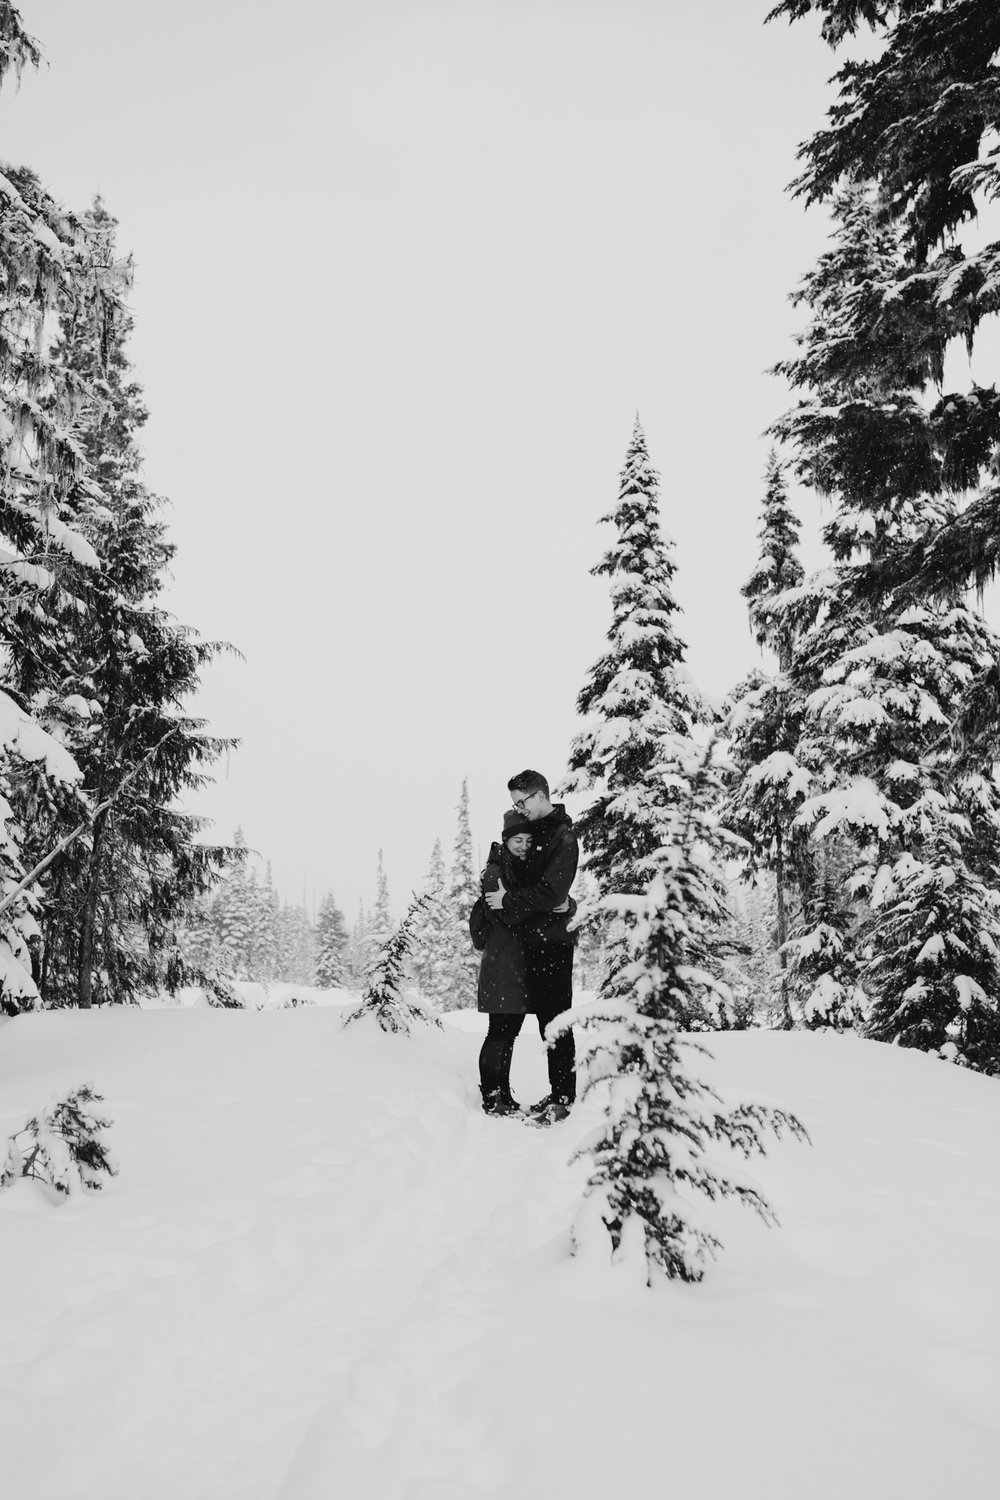 greg+jade-mount-washington-winter-engagement062.JPG